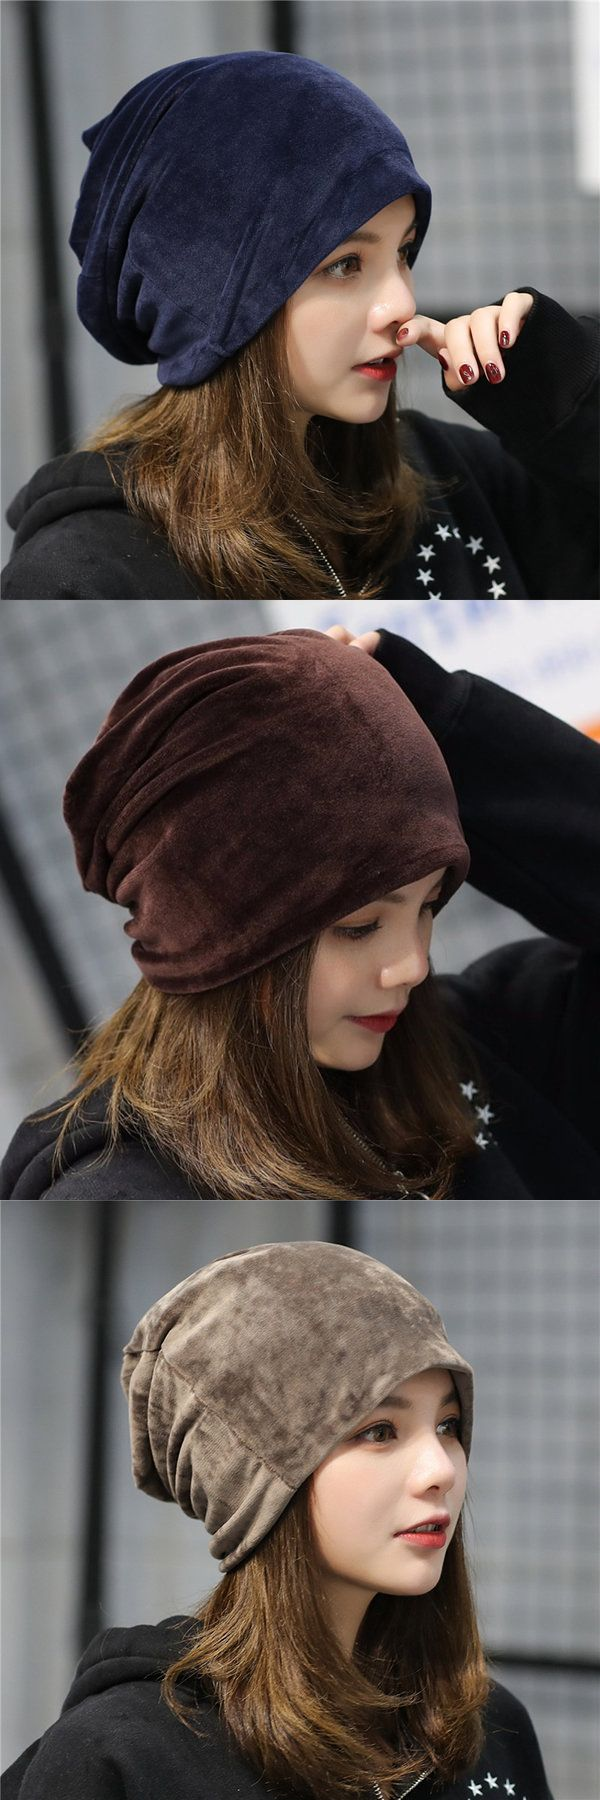 Women's Solid Velvet Skullies Beanie Hat Casual Ear Protection Windproof Warm Hat